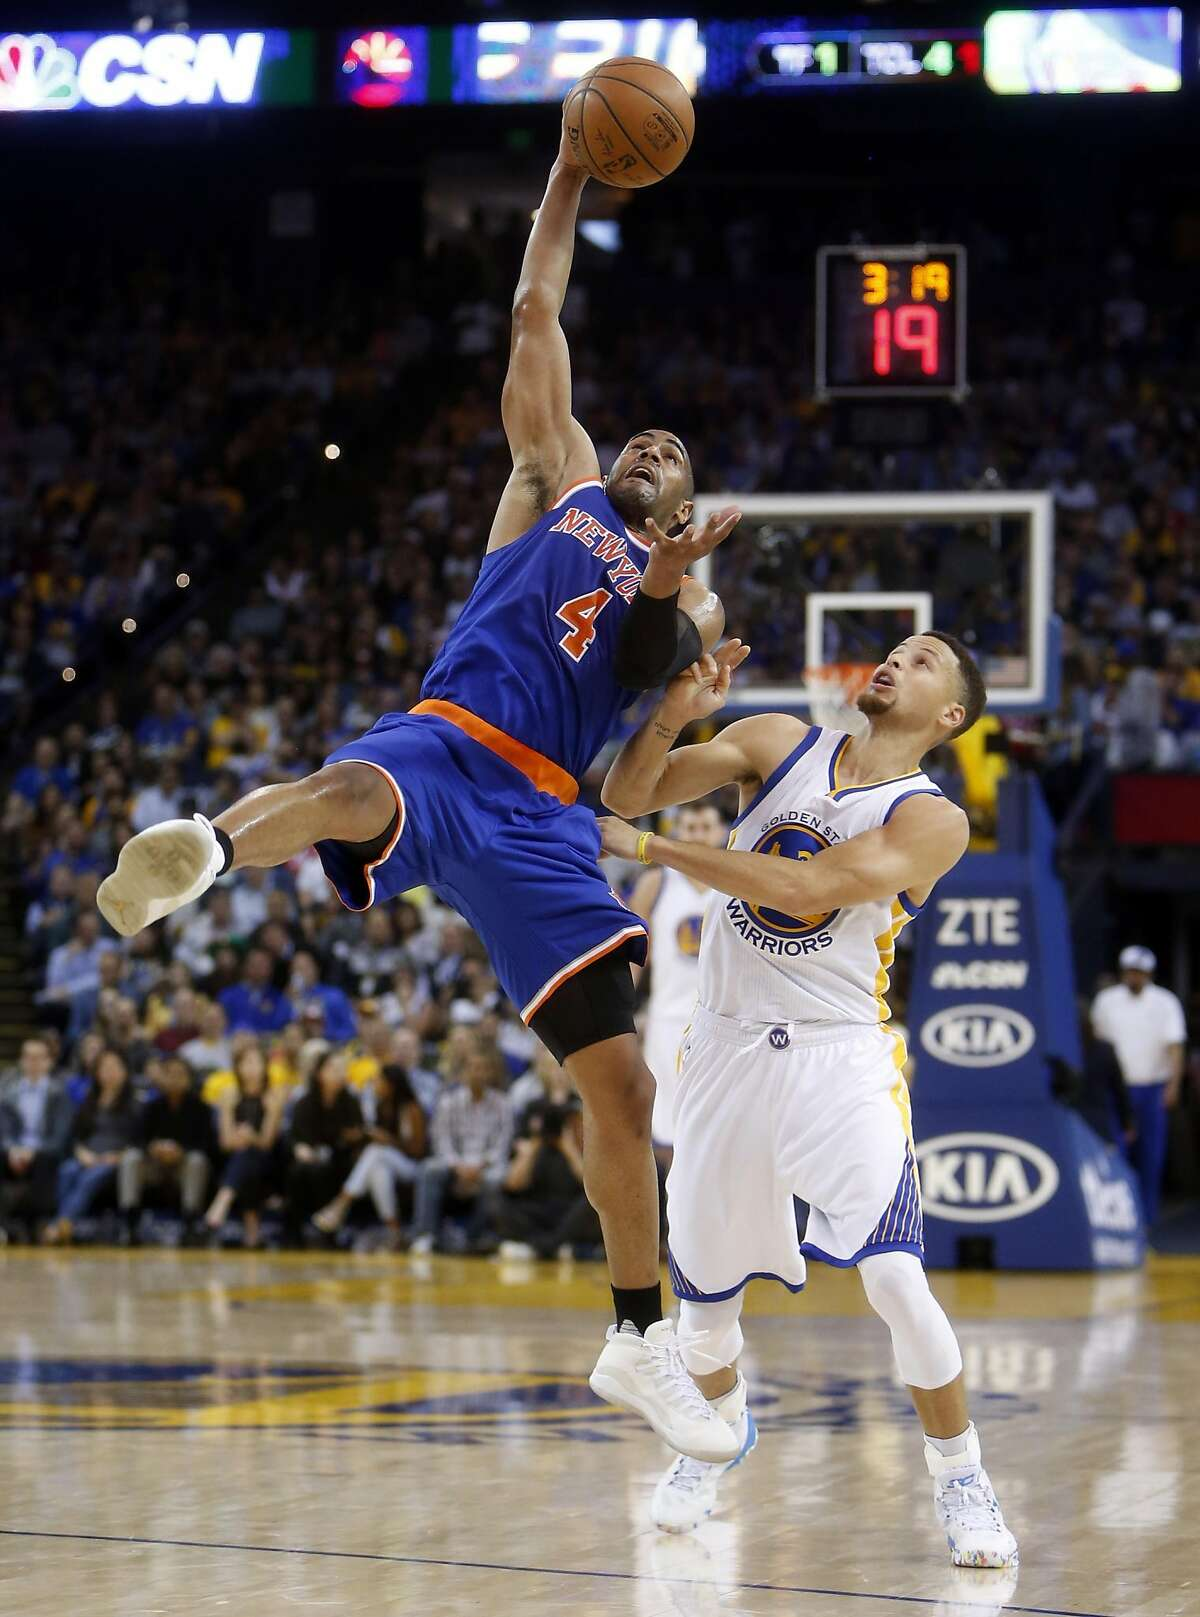 New York Knicks' Arron Afflalo grabs a pass against Golden State Warriors' Stephen Curry in 2nd quarter of NBA game at Oracle Arena in Oakland, Calif., on Wednesday, March 16, 2016.